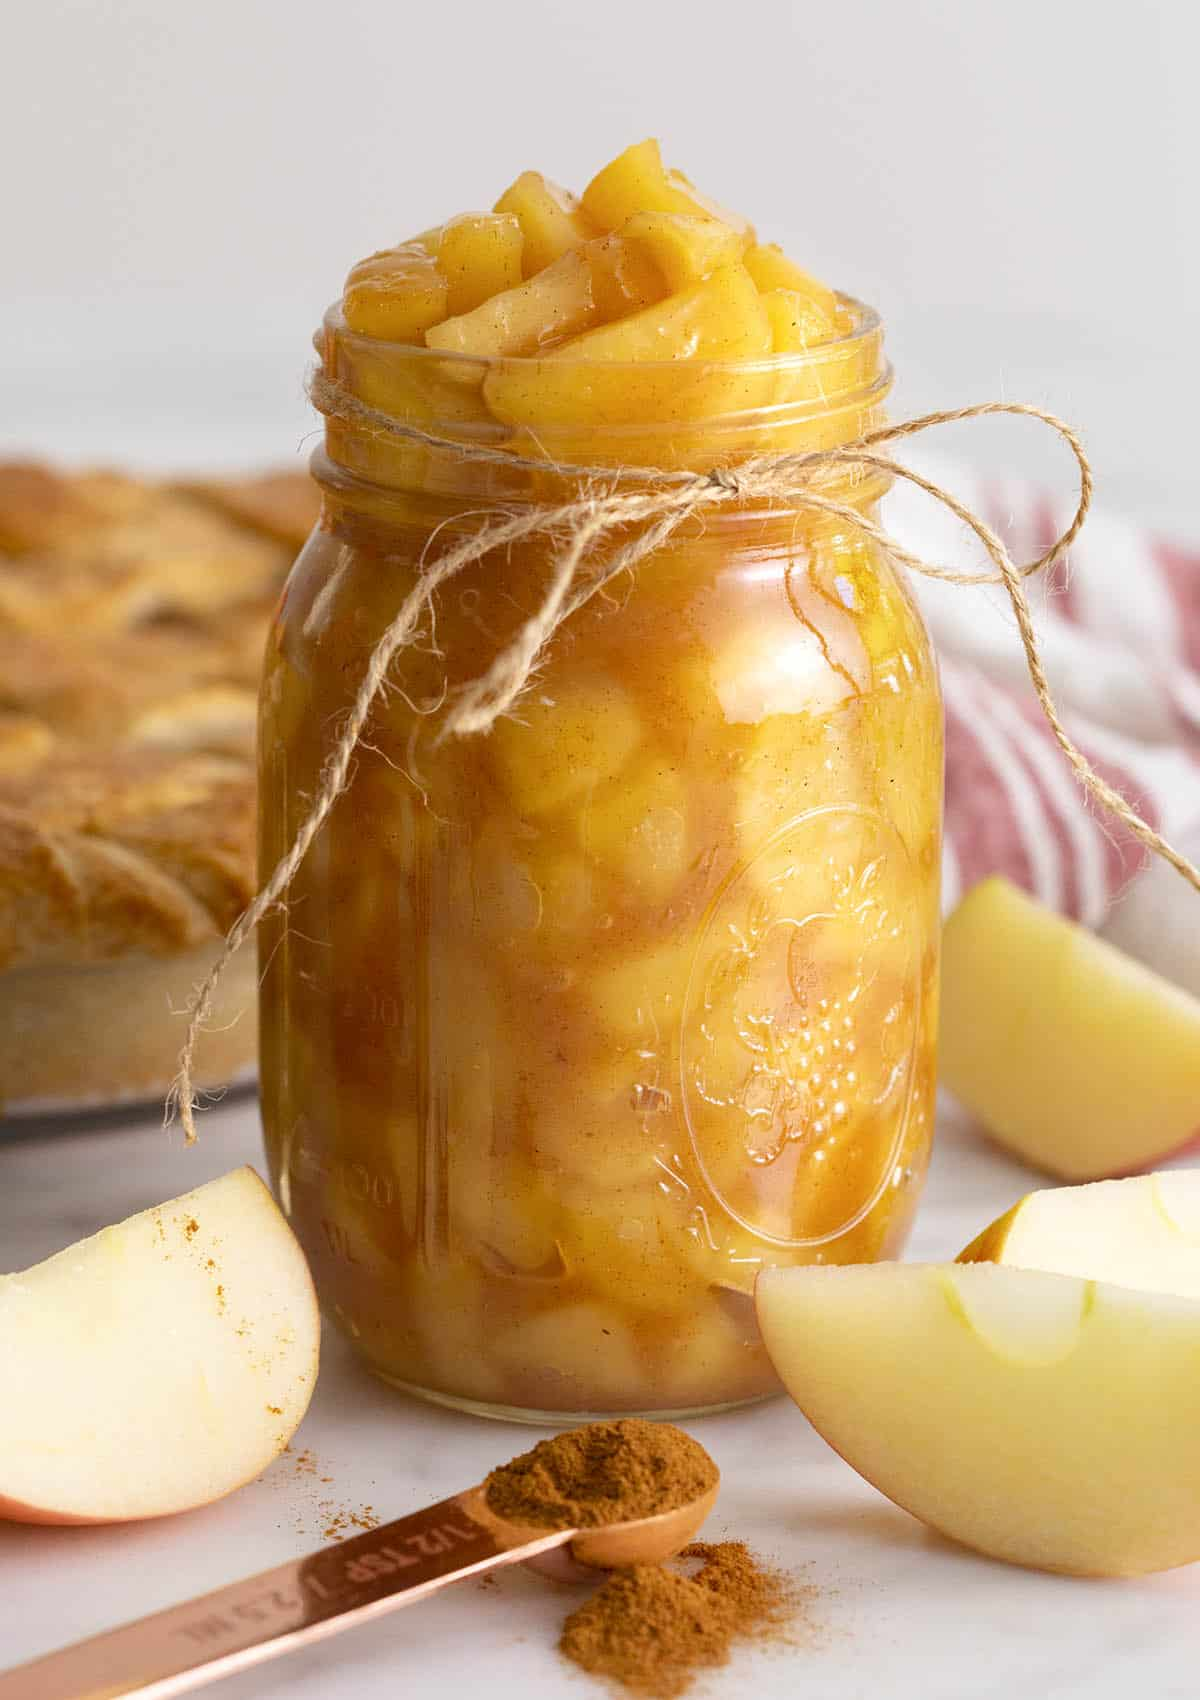 A big jar of apple pie filling next to some apple slices.